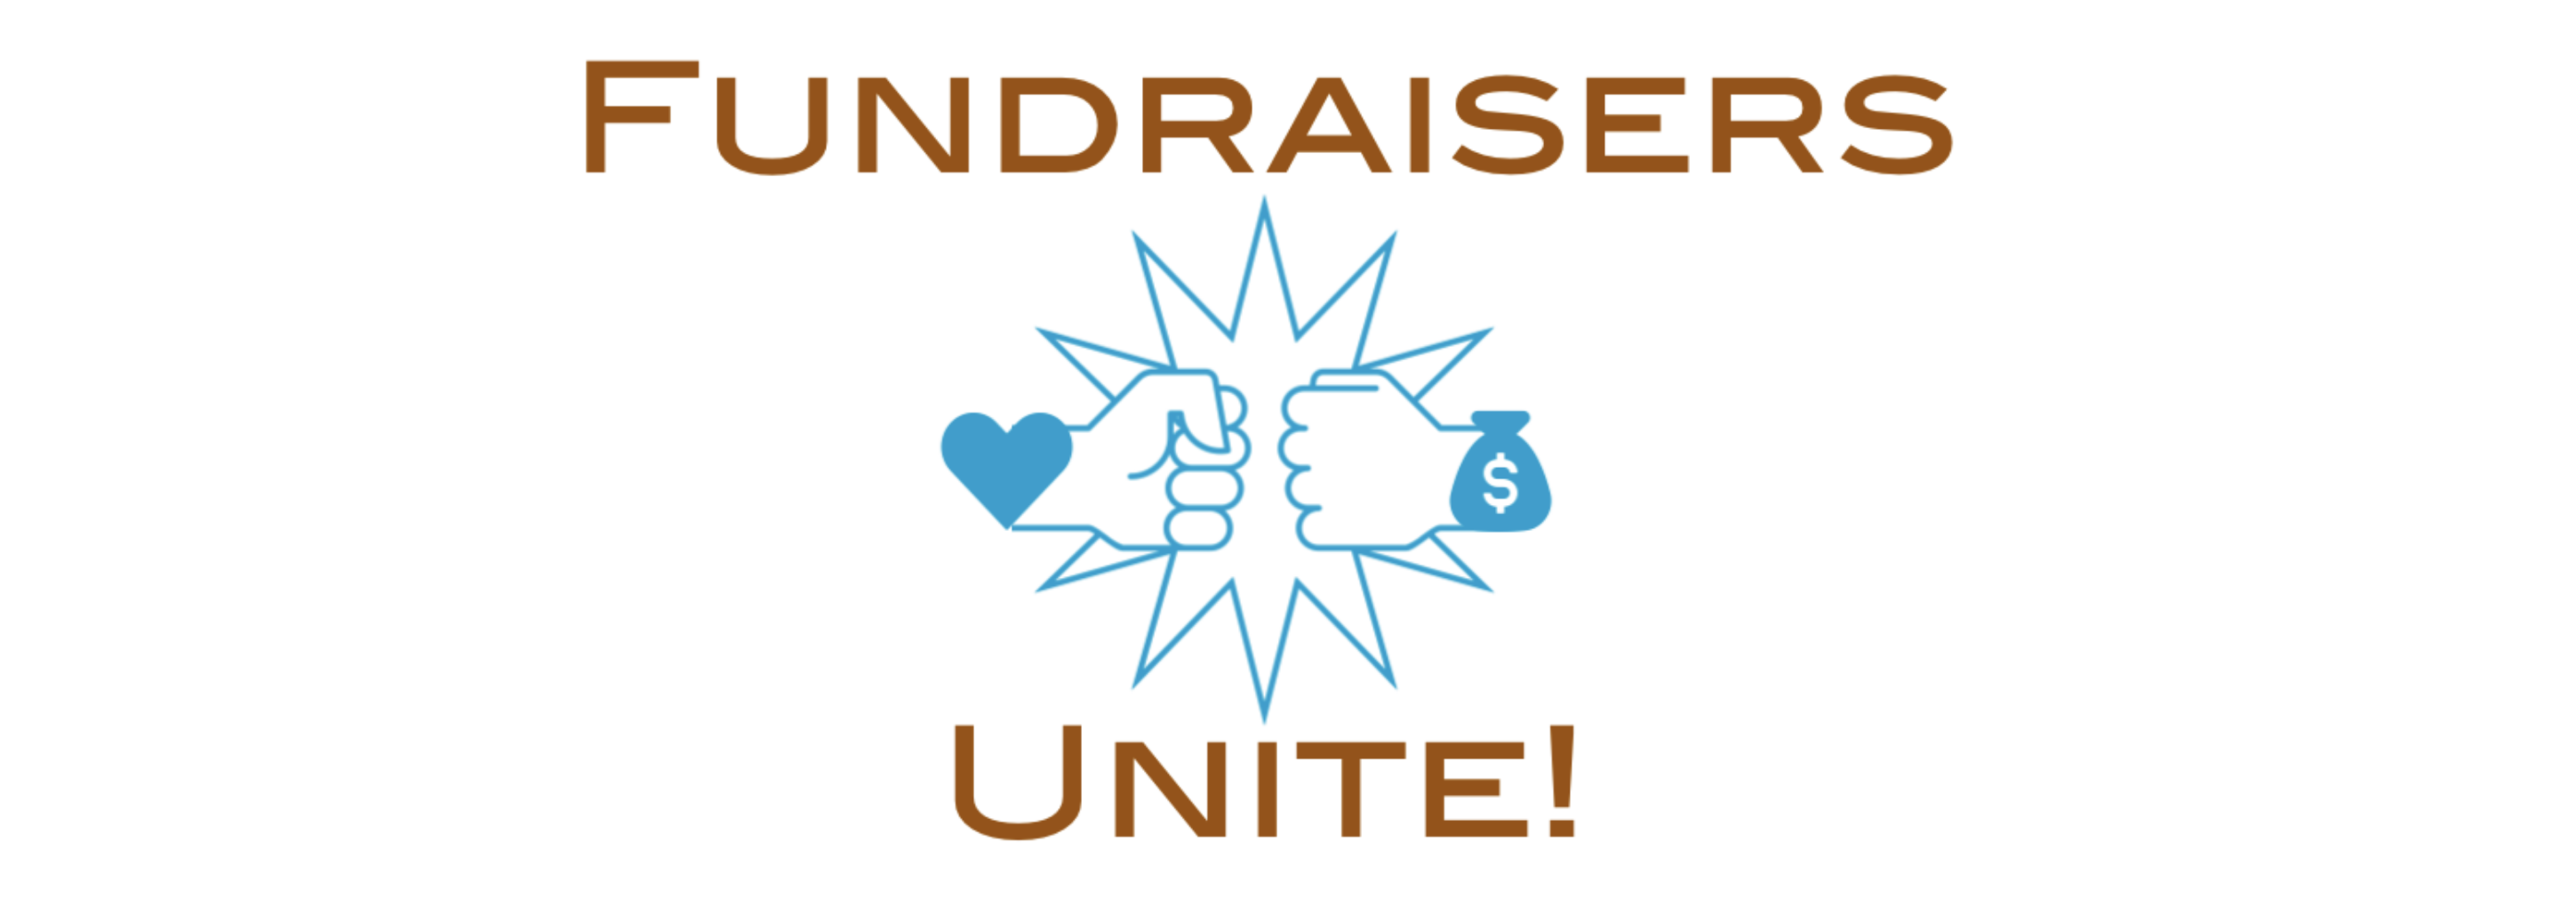 Fundraisers Unite Information